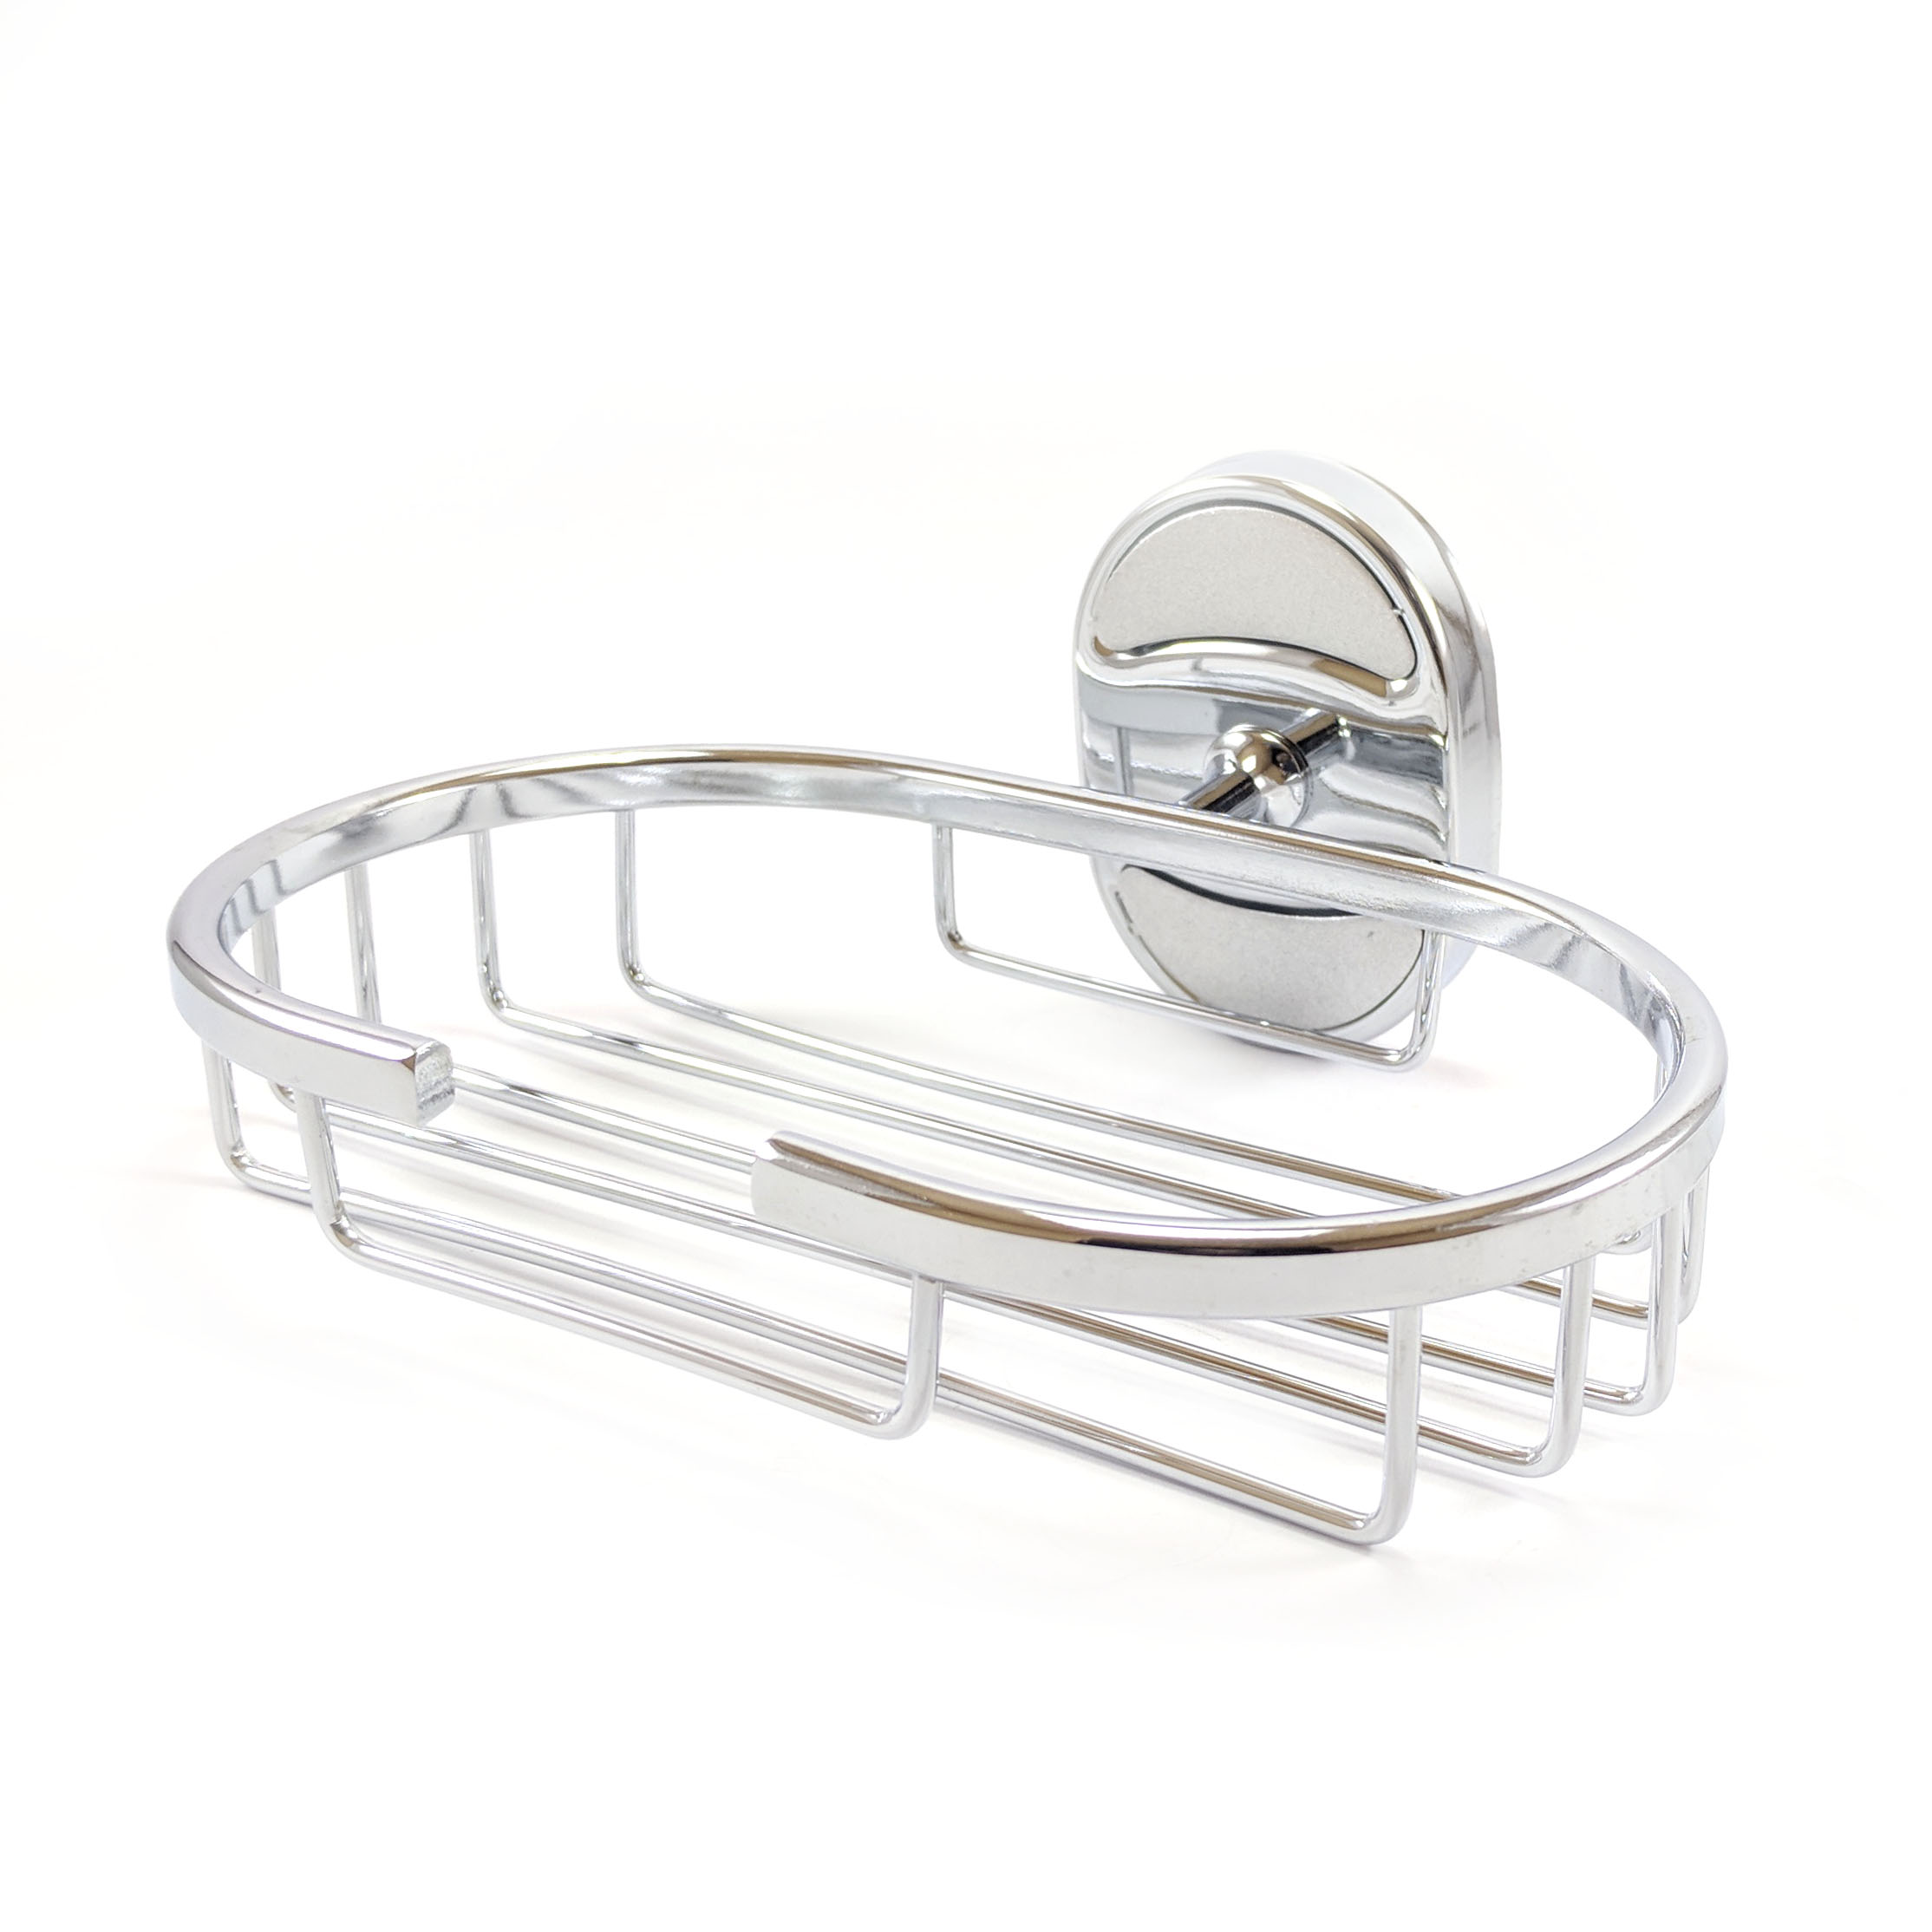 AA Soap Holder Stainless Steel Blue Package